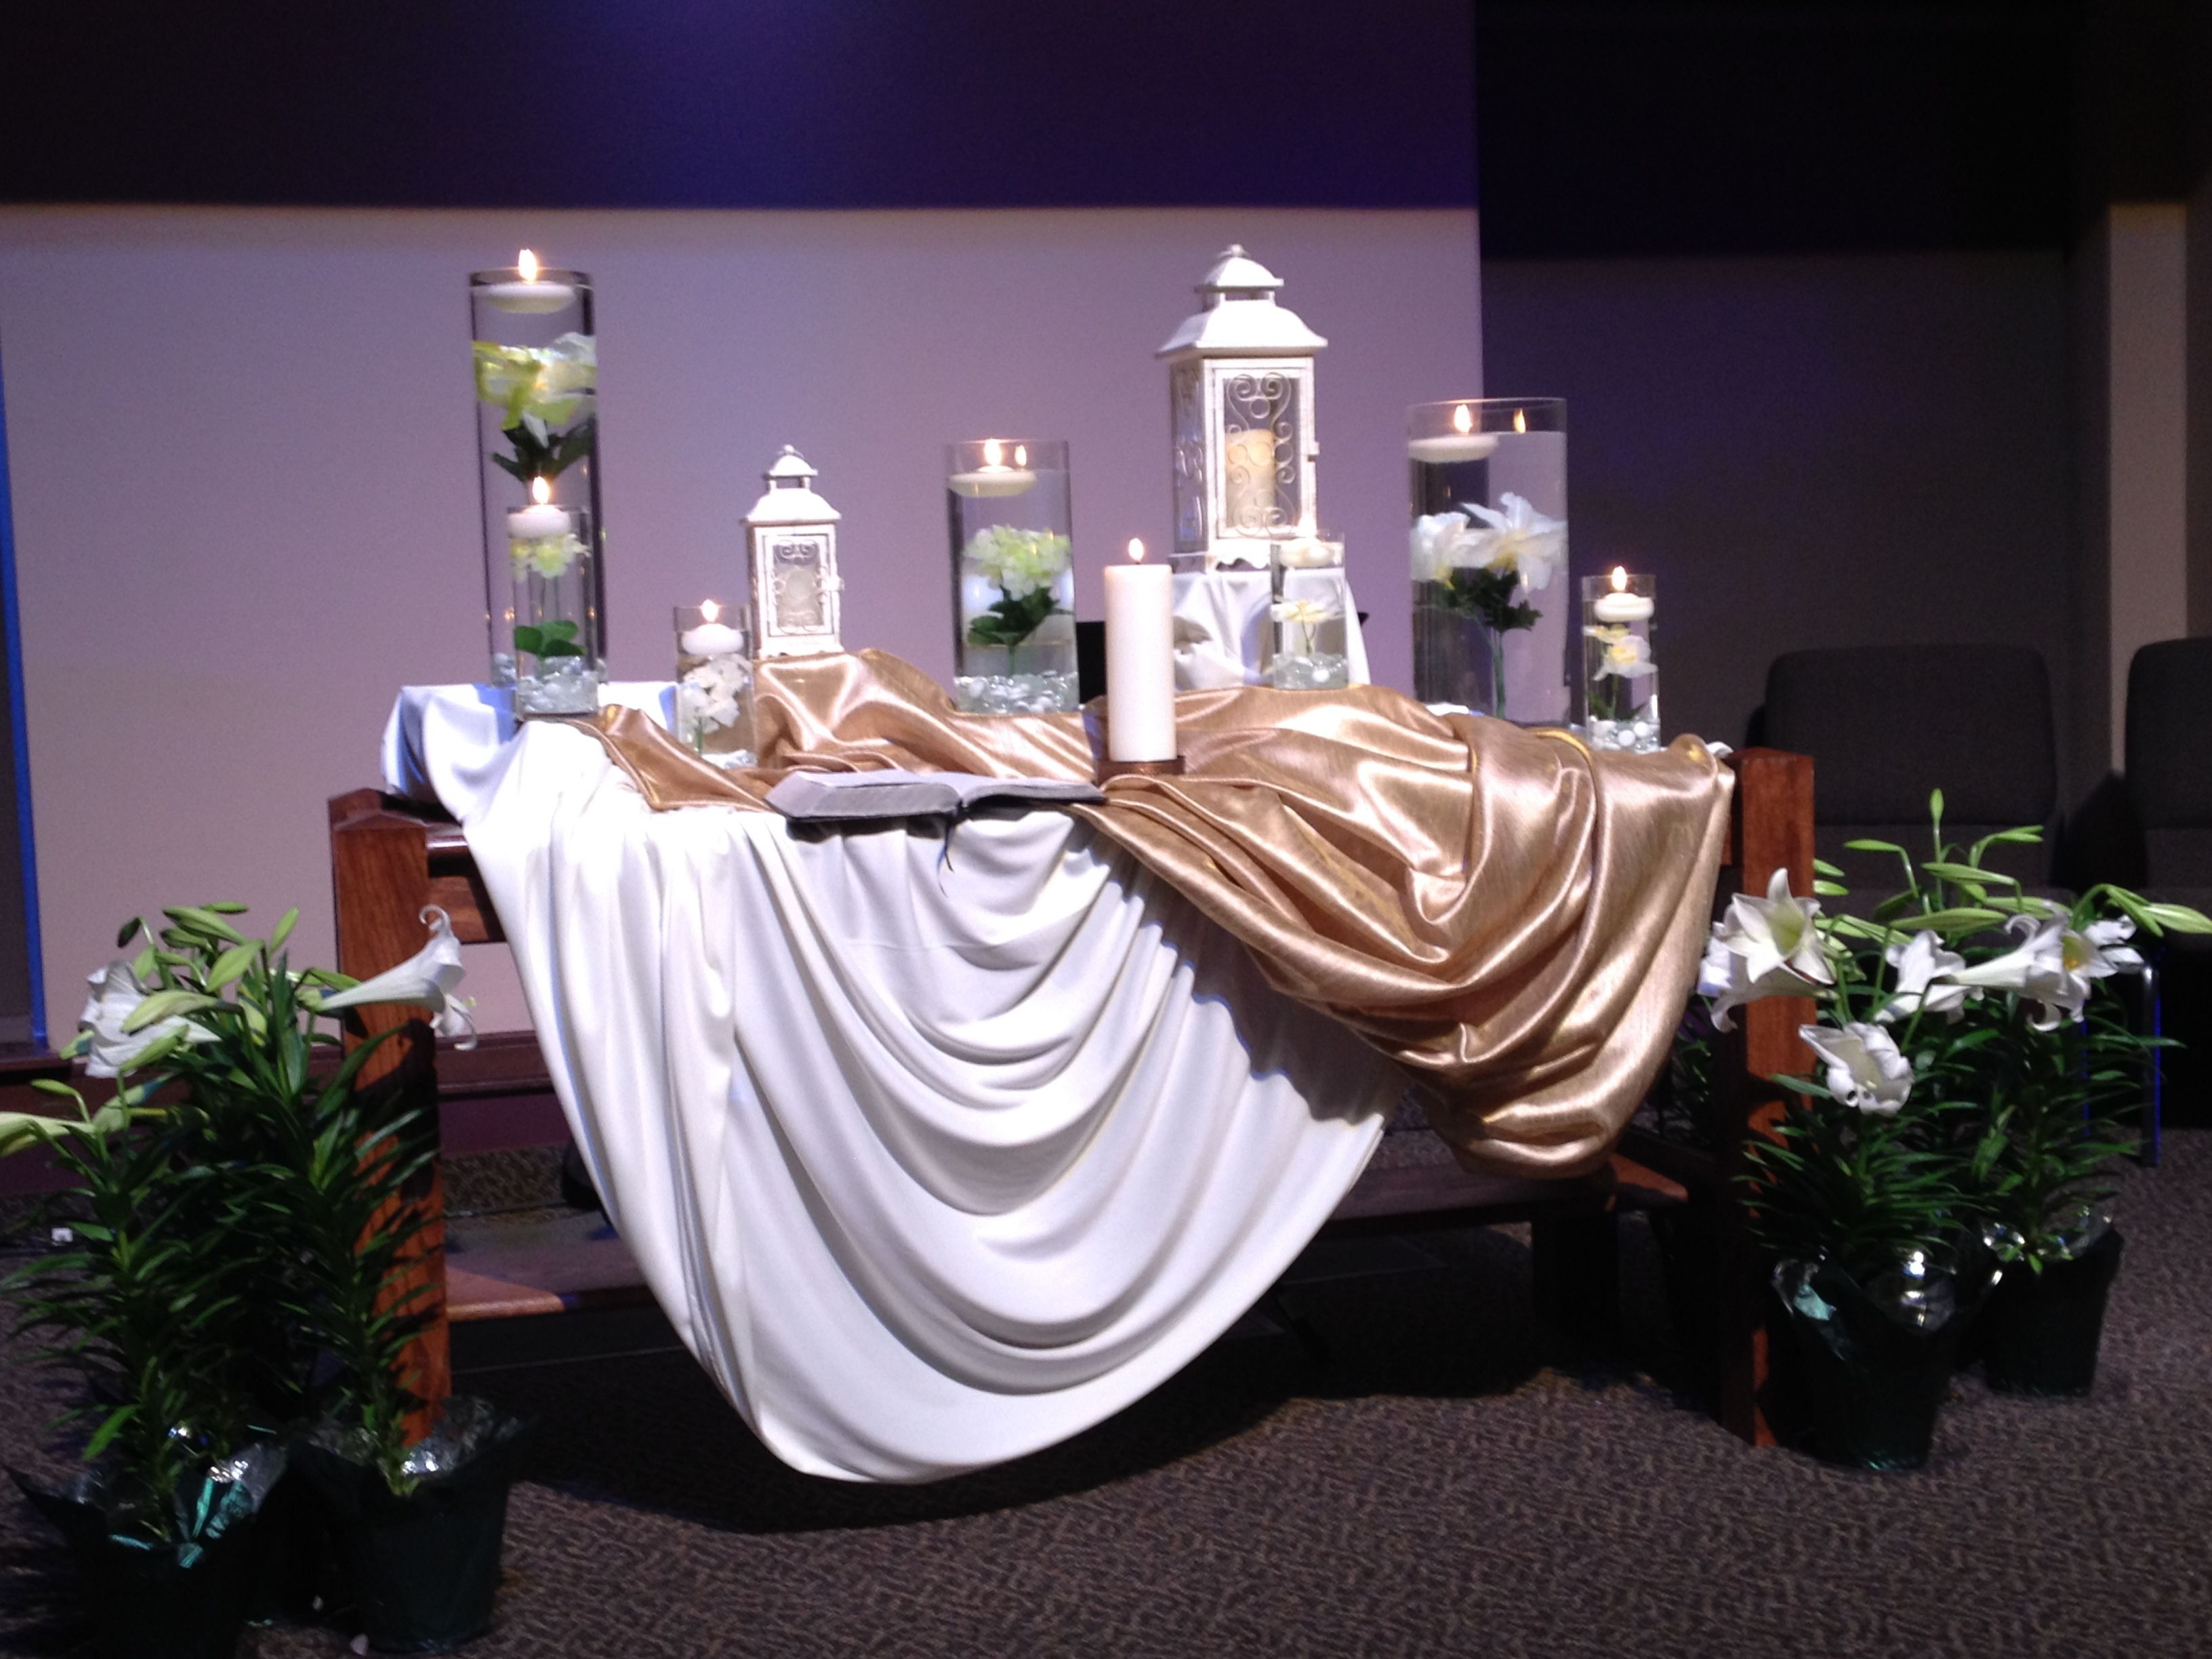 Easter Decorating Ideas For Church church communion table decorated for memorial day | holiday time